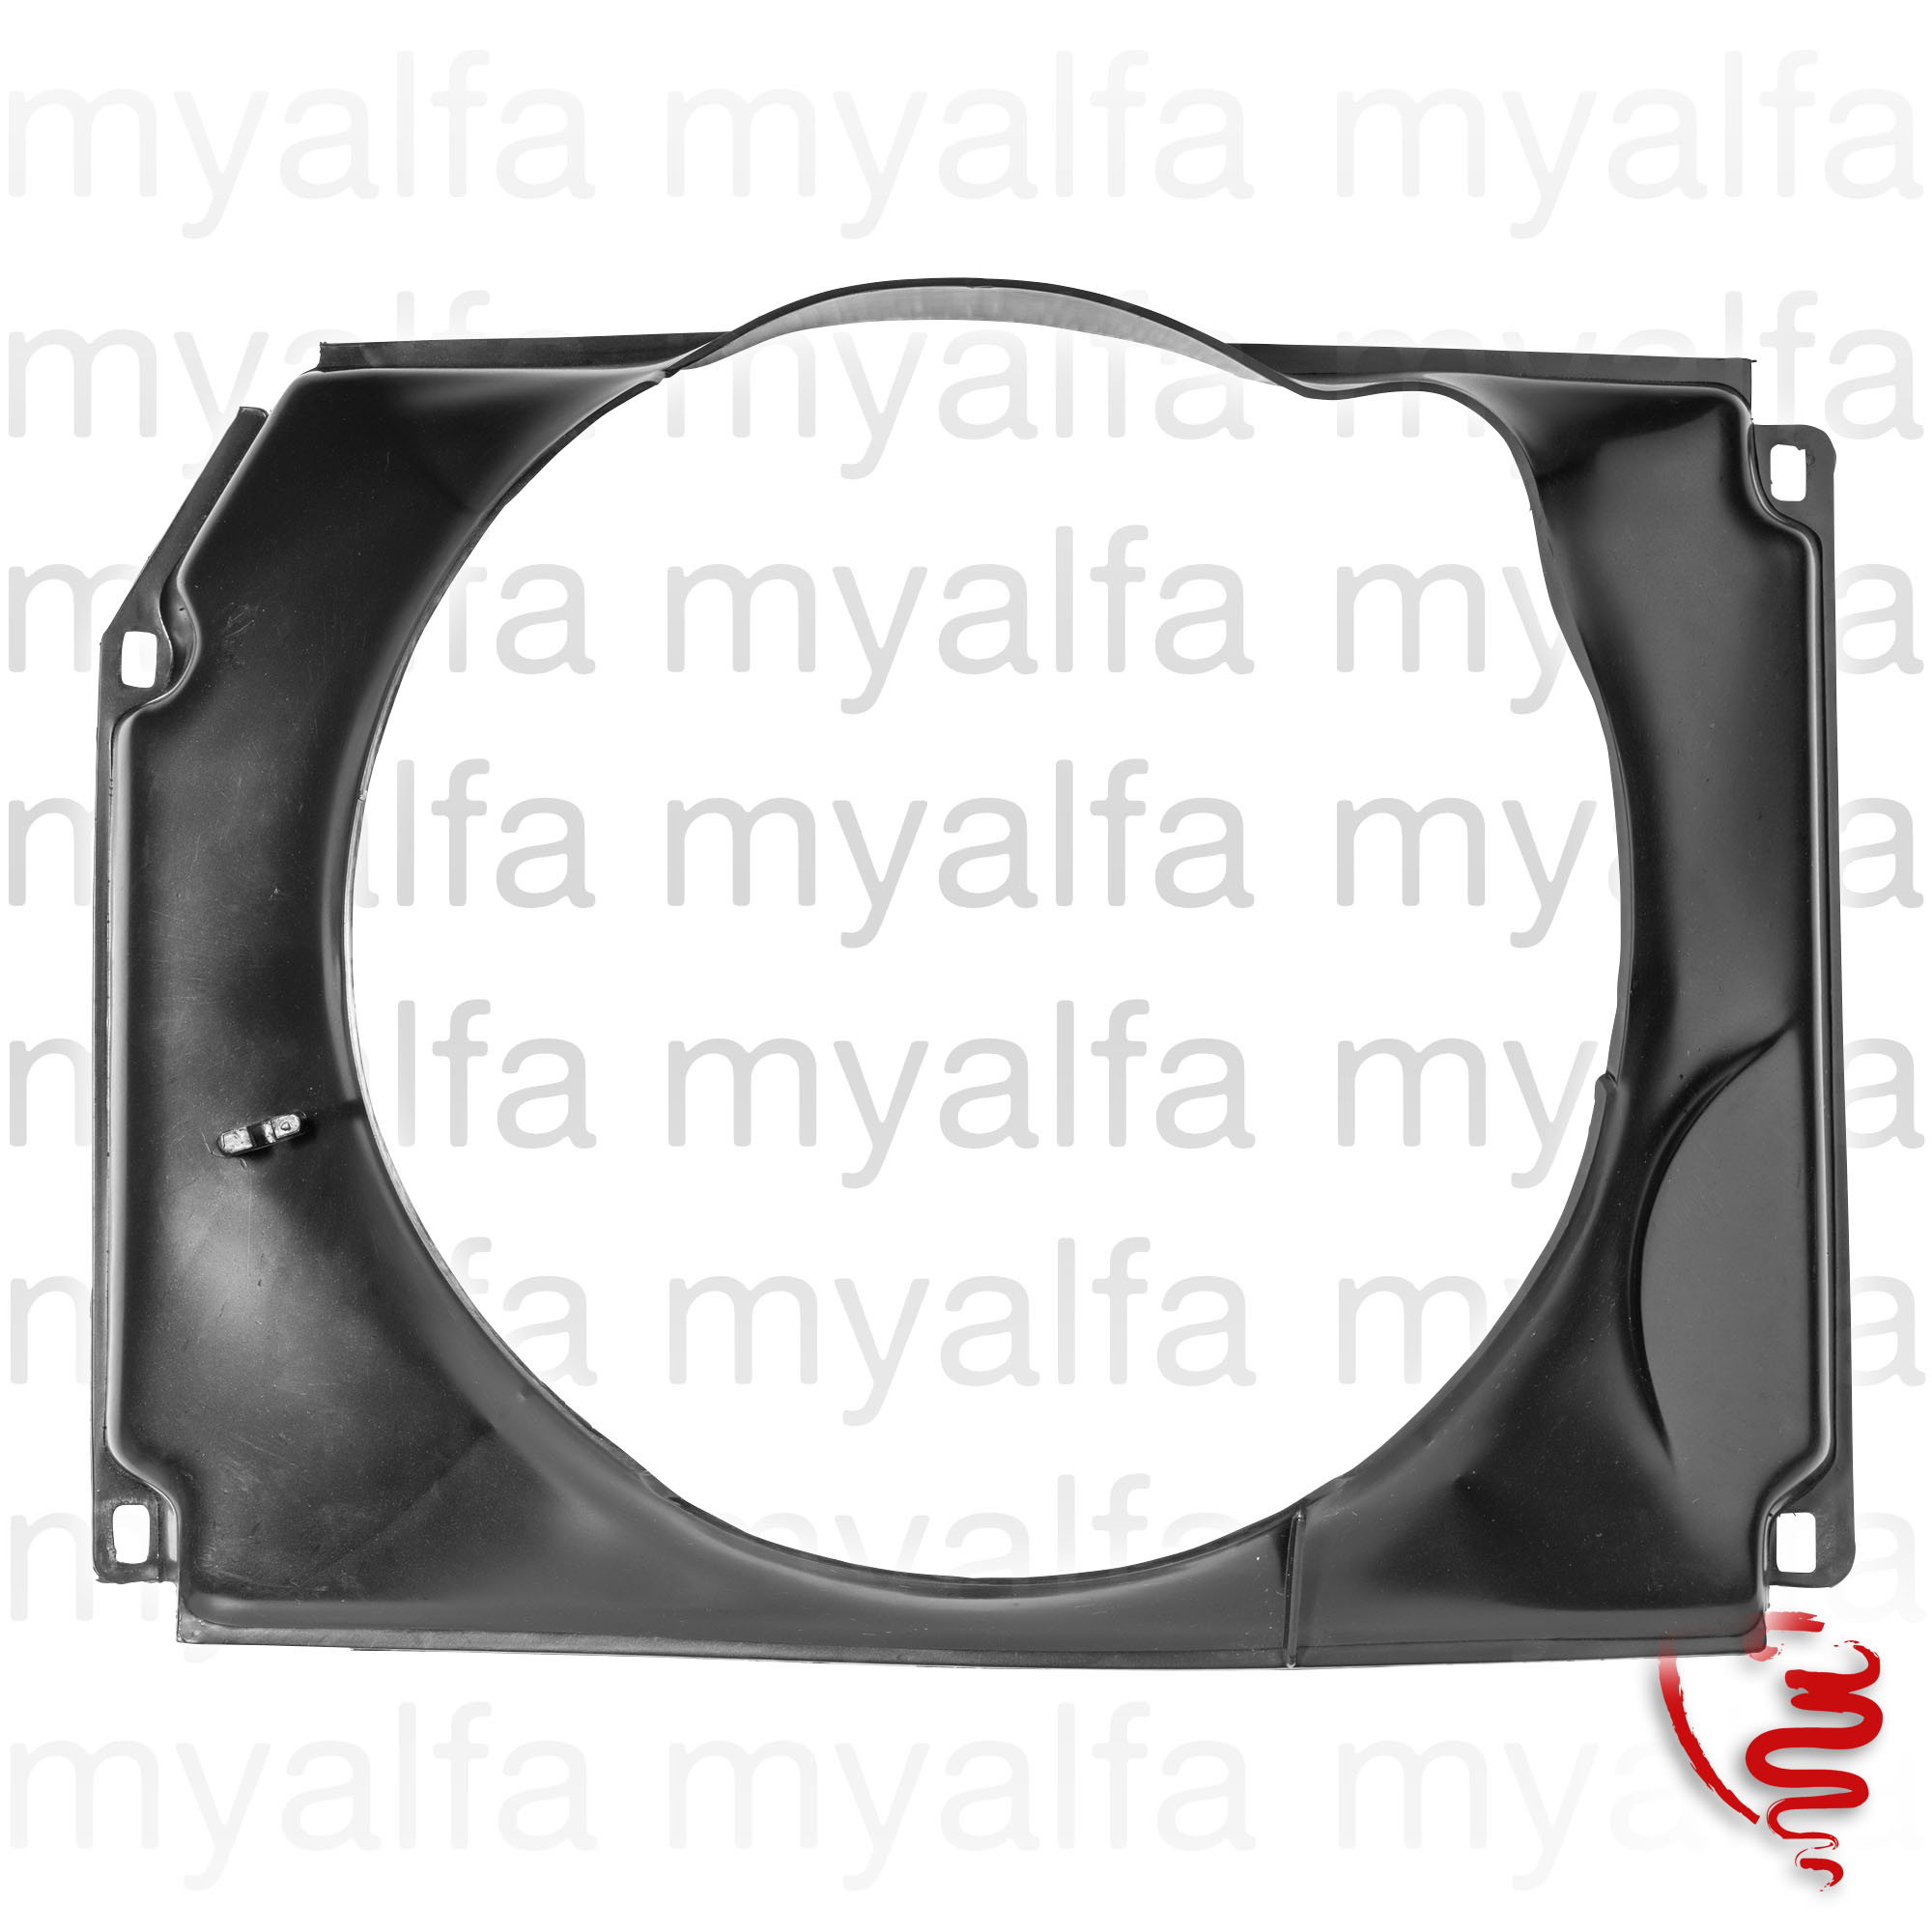 Fan protection for 105/115, Cooling System, Radiator